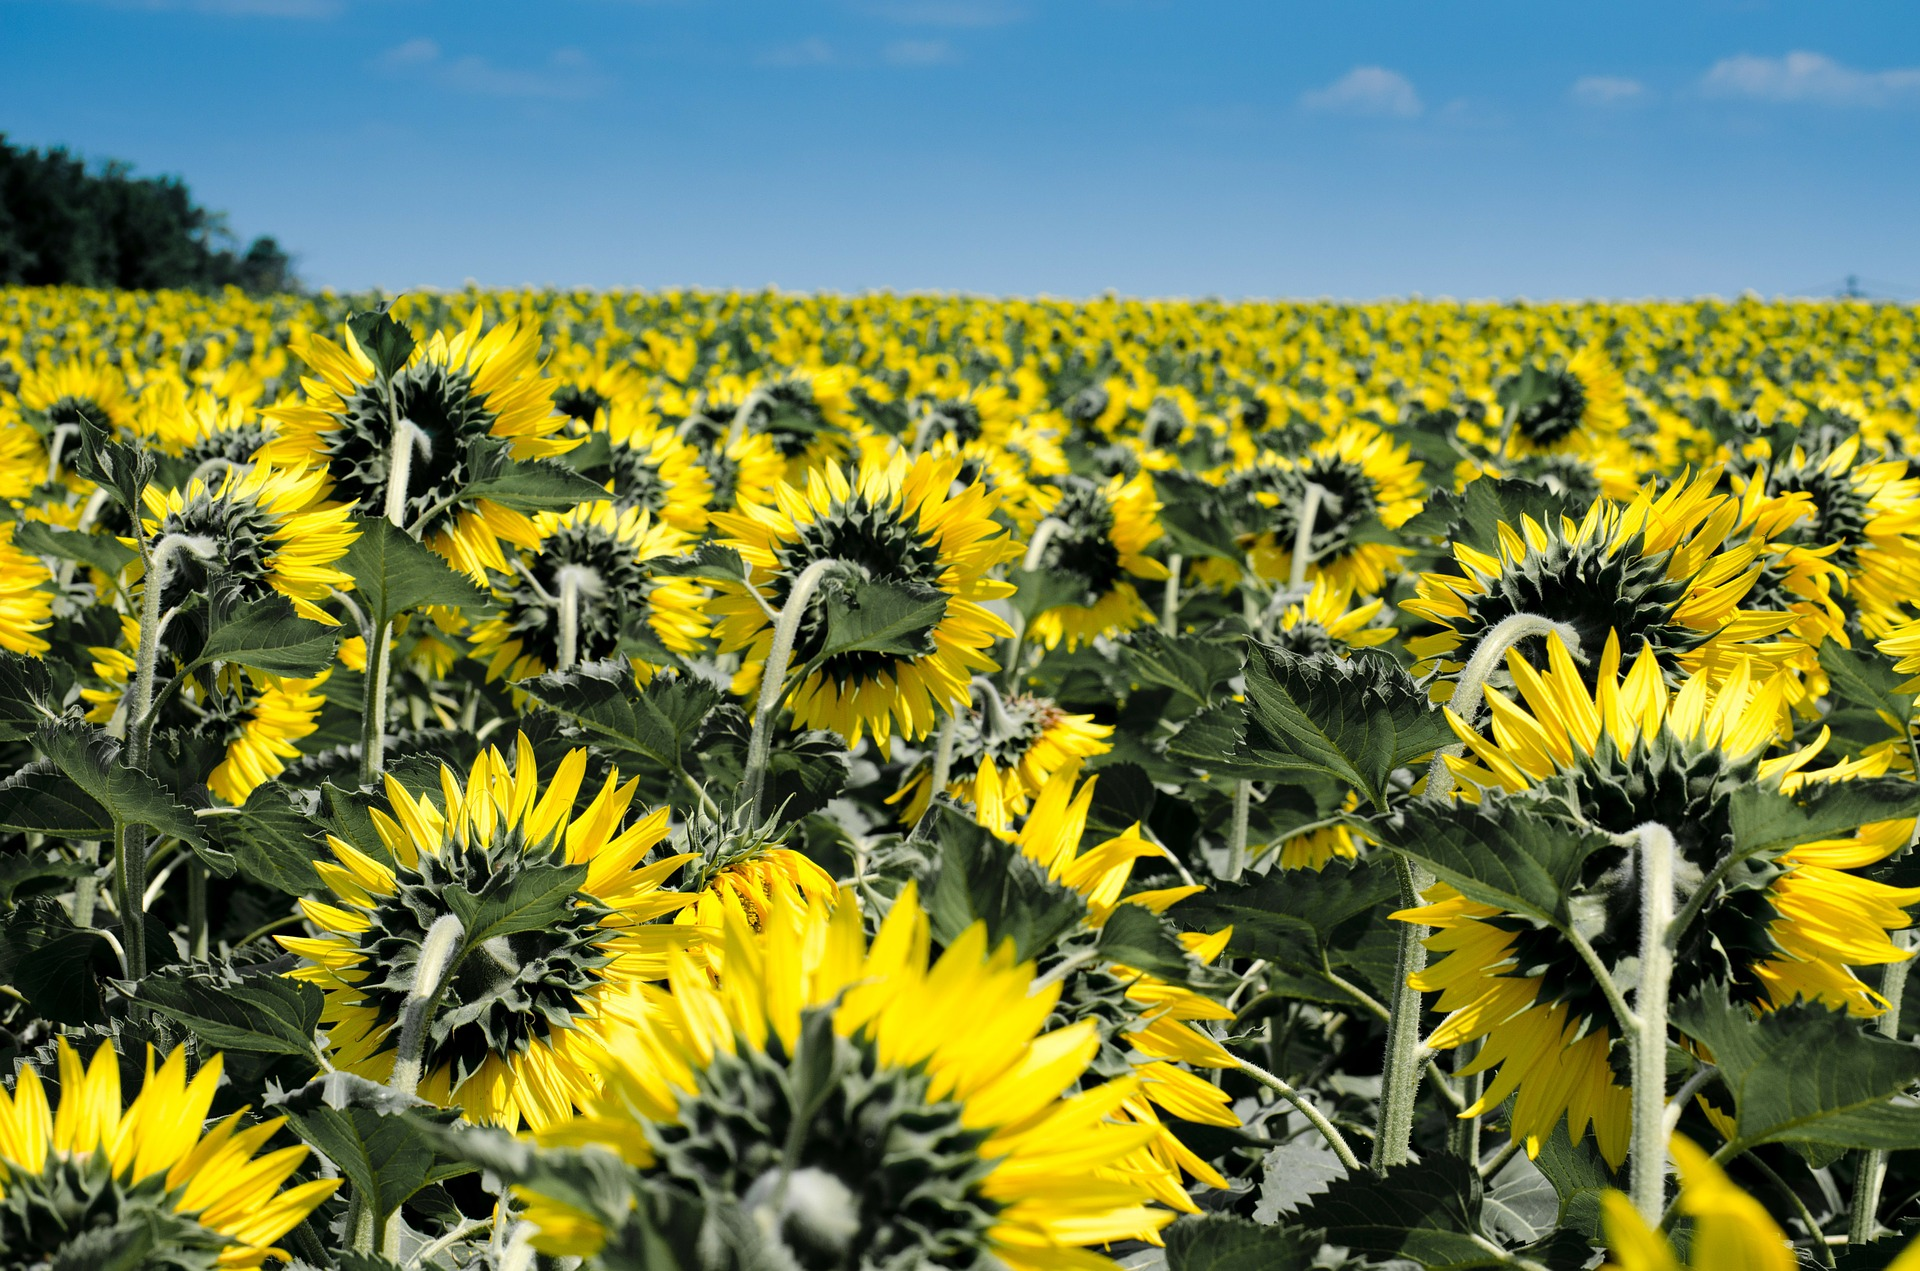 Sunflowers only seem to fall into the clever pattern if the amount of plants growing on a field reaches a certain density. Photo Credit: Kincse_j via Pixabay cc0